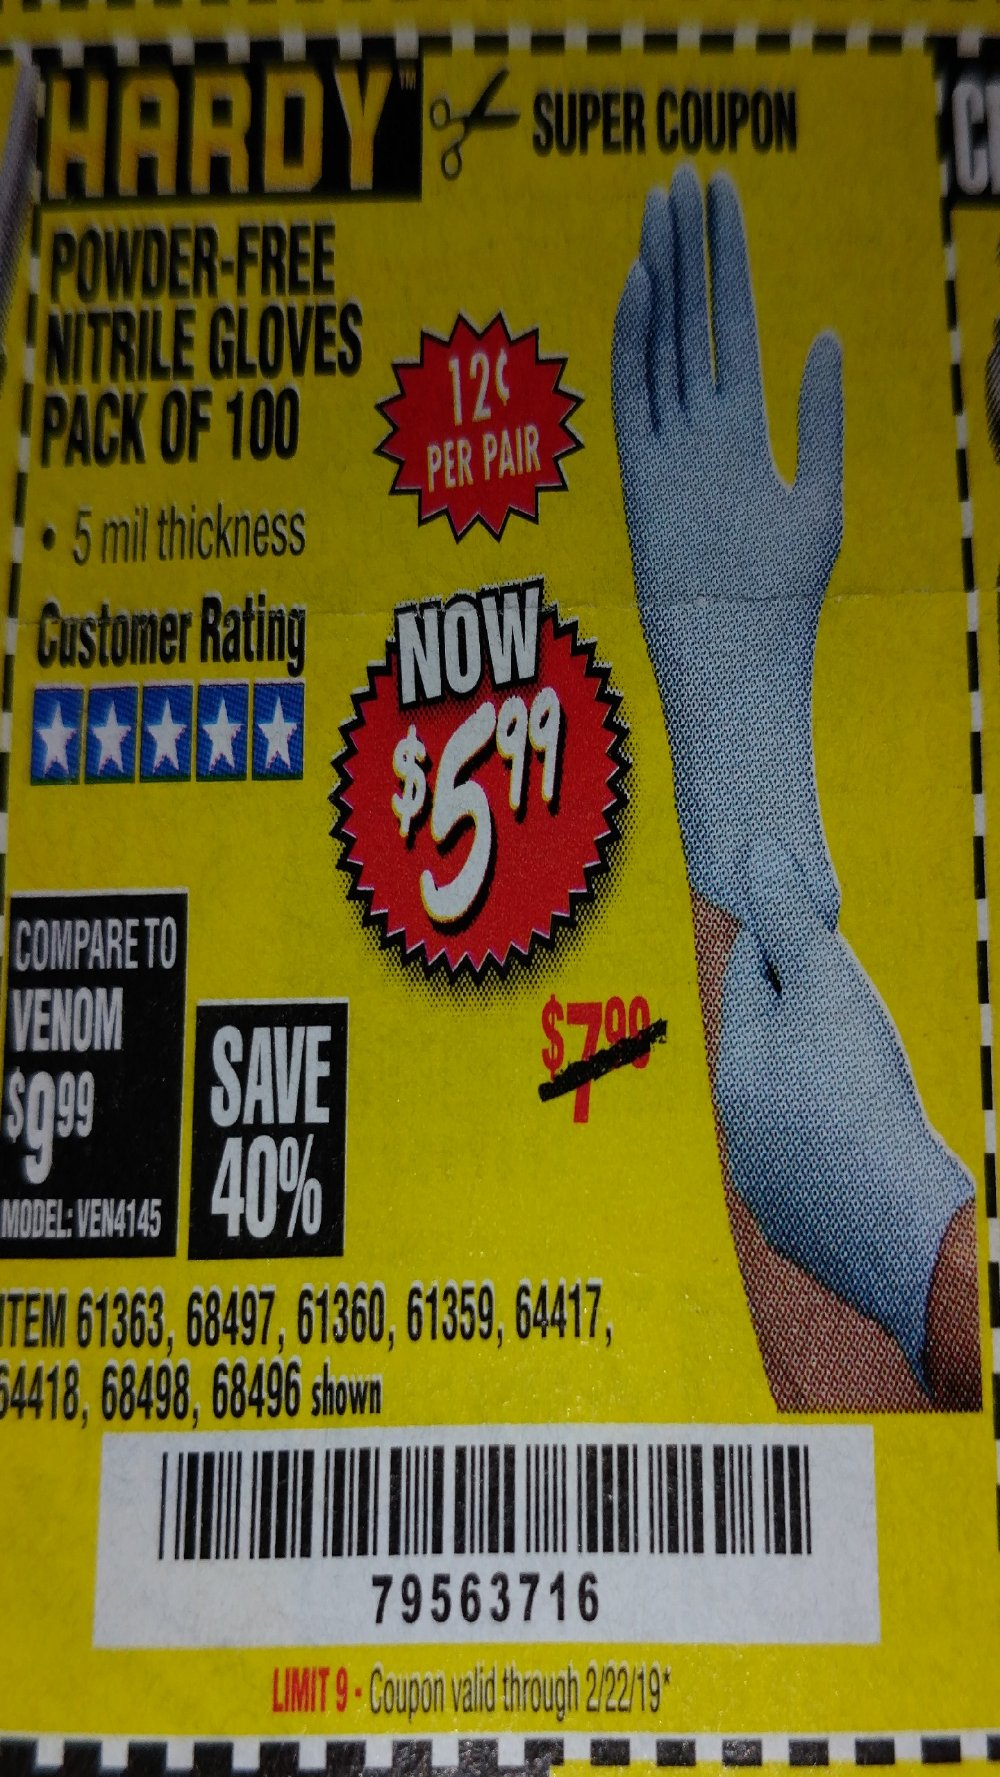 Harbor Freight Coupon, HF Coupons - 5 Mil Nitrile Gloves 100/pk